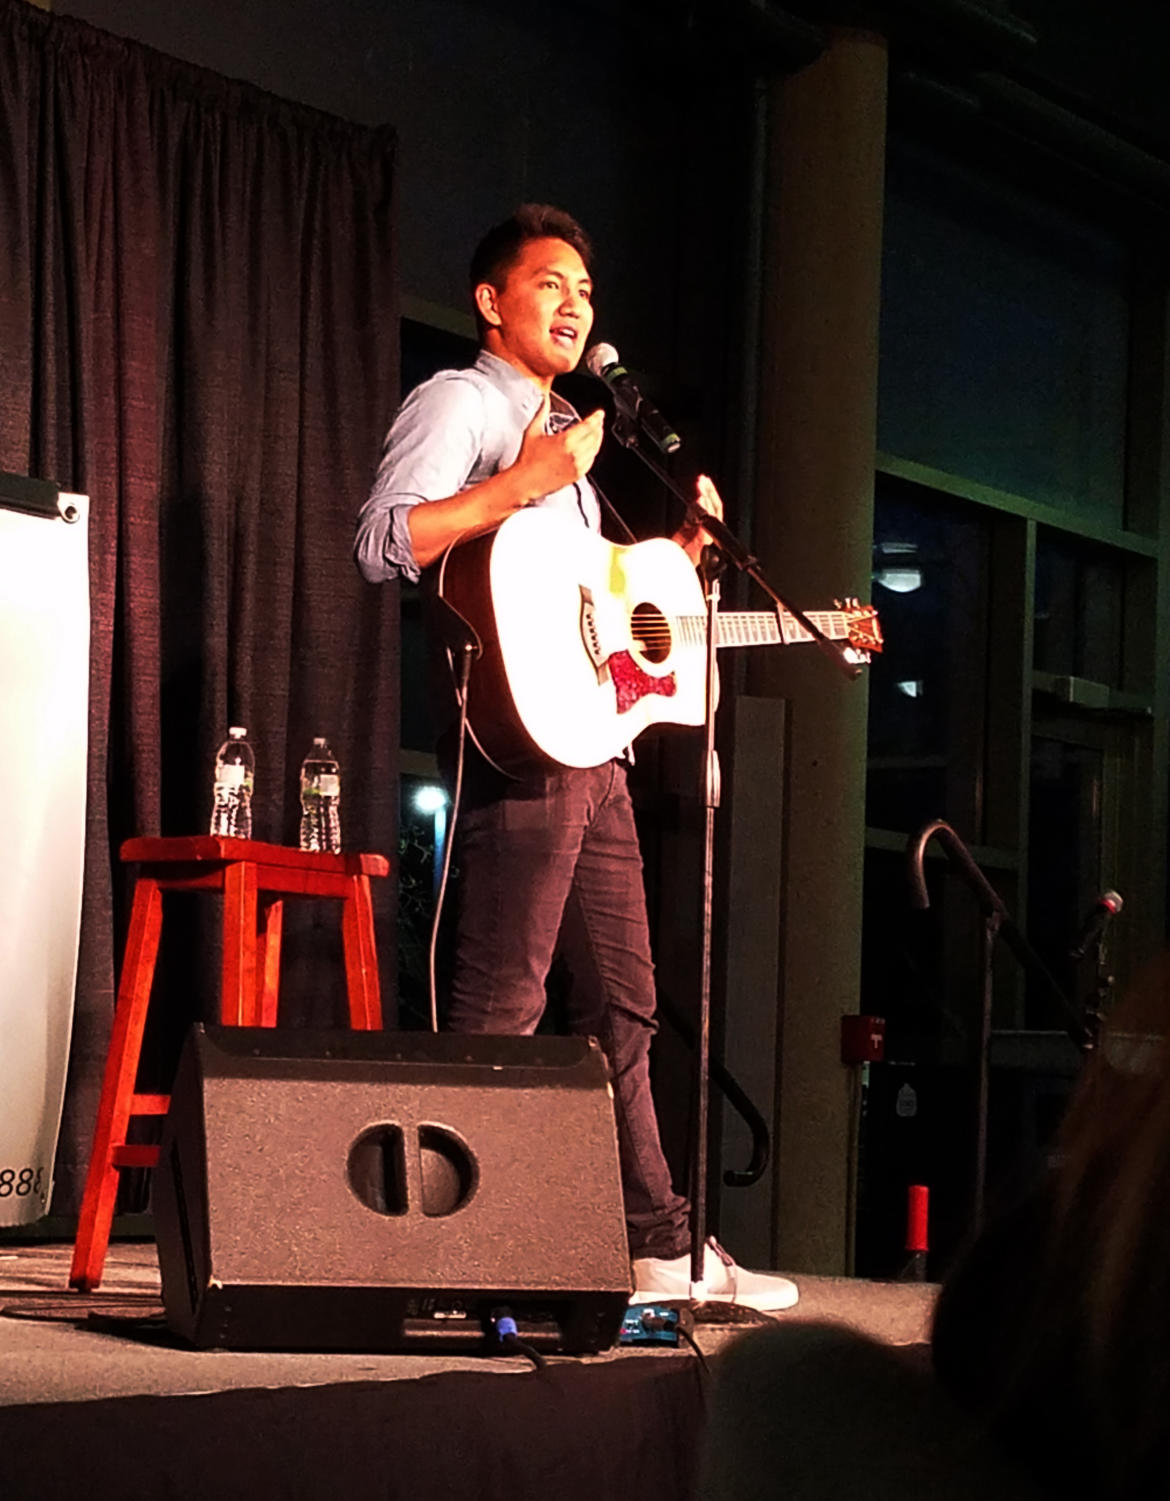 De Guzman improvs a song about pugs and bacon.